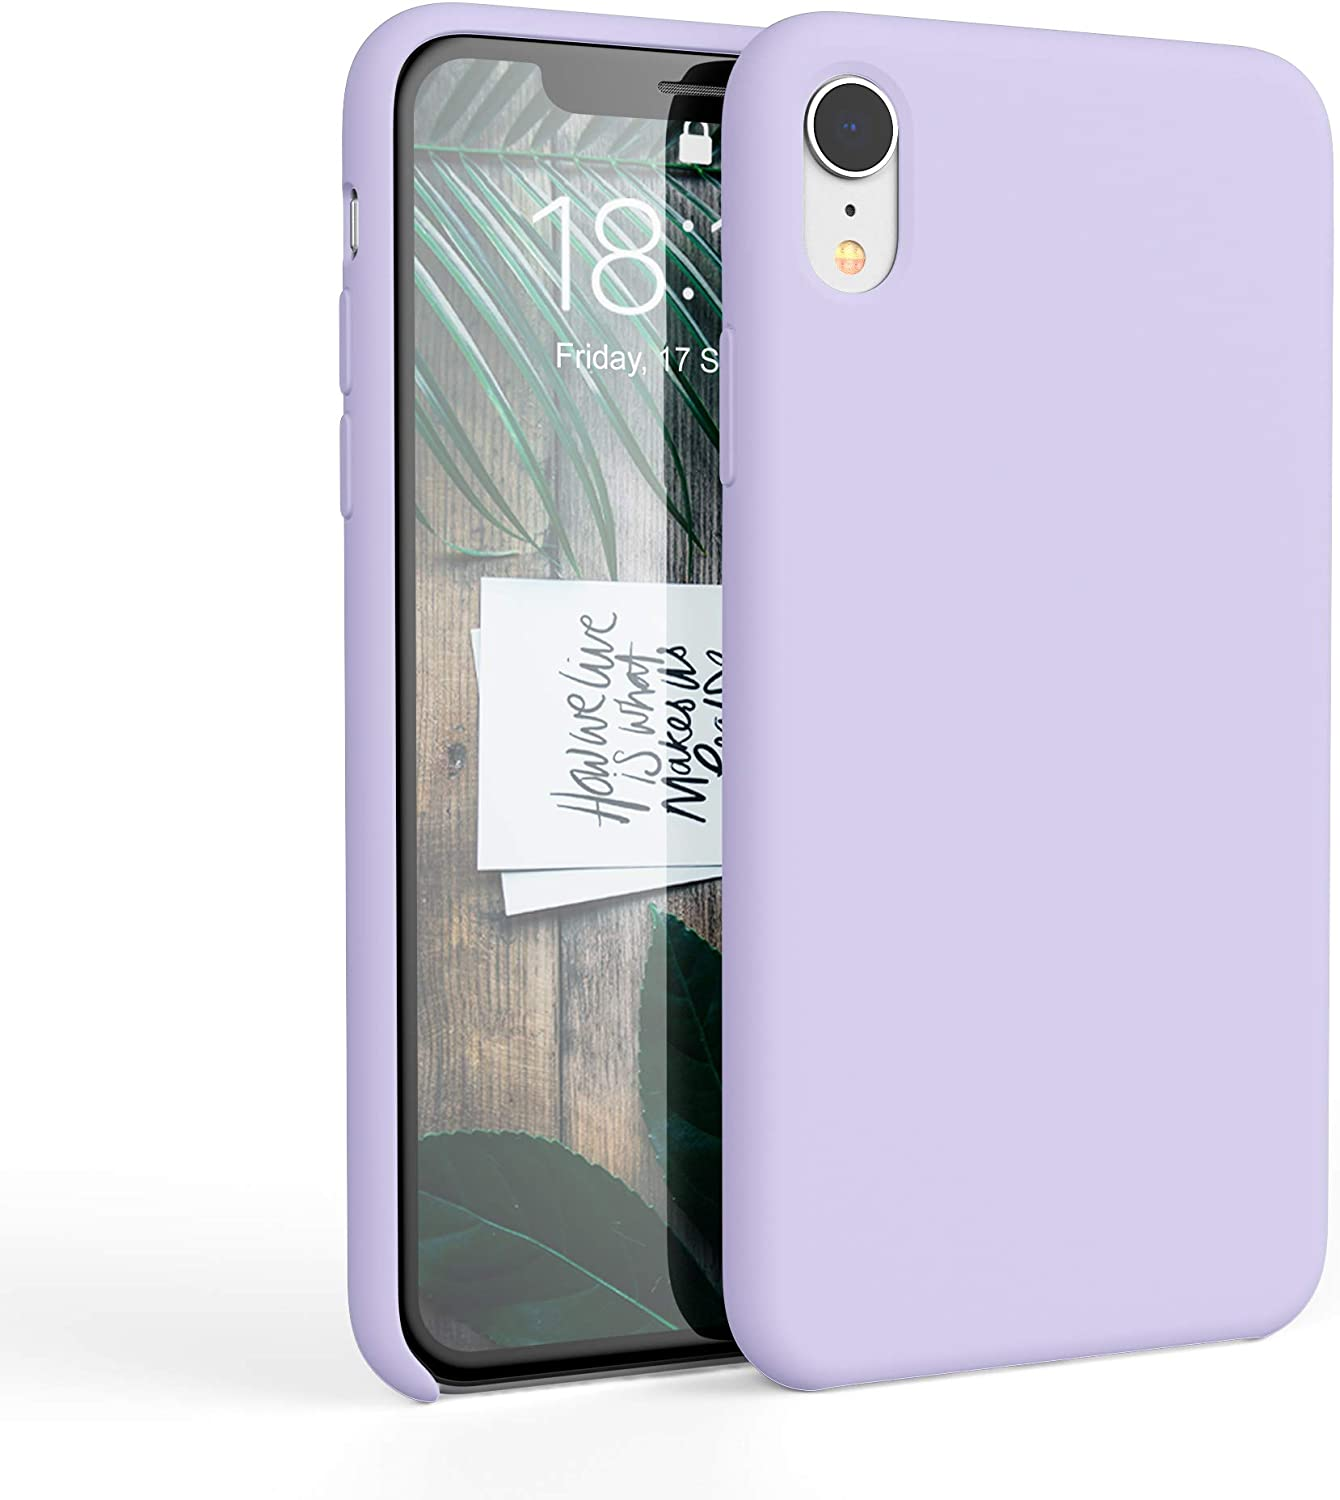 honua. Silicone Case for iPhone XR, Soft and Protective iPhone Case with Microfiber Lining, Compatible with Apple iPhone XR 6.1 inch (Lavender Purple)